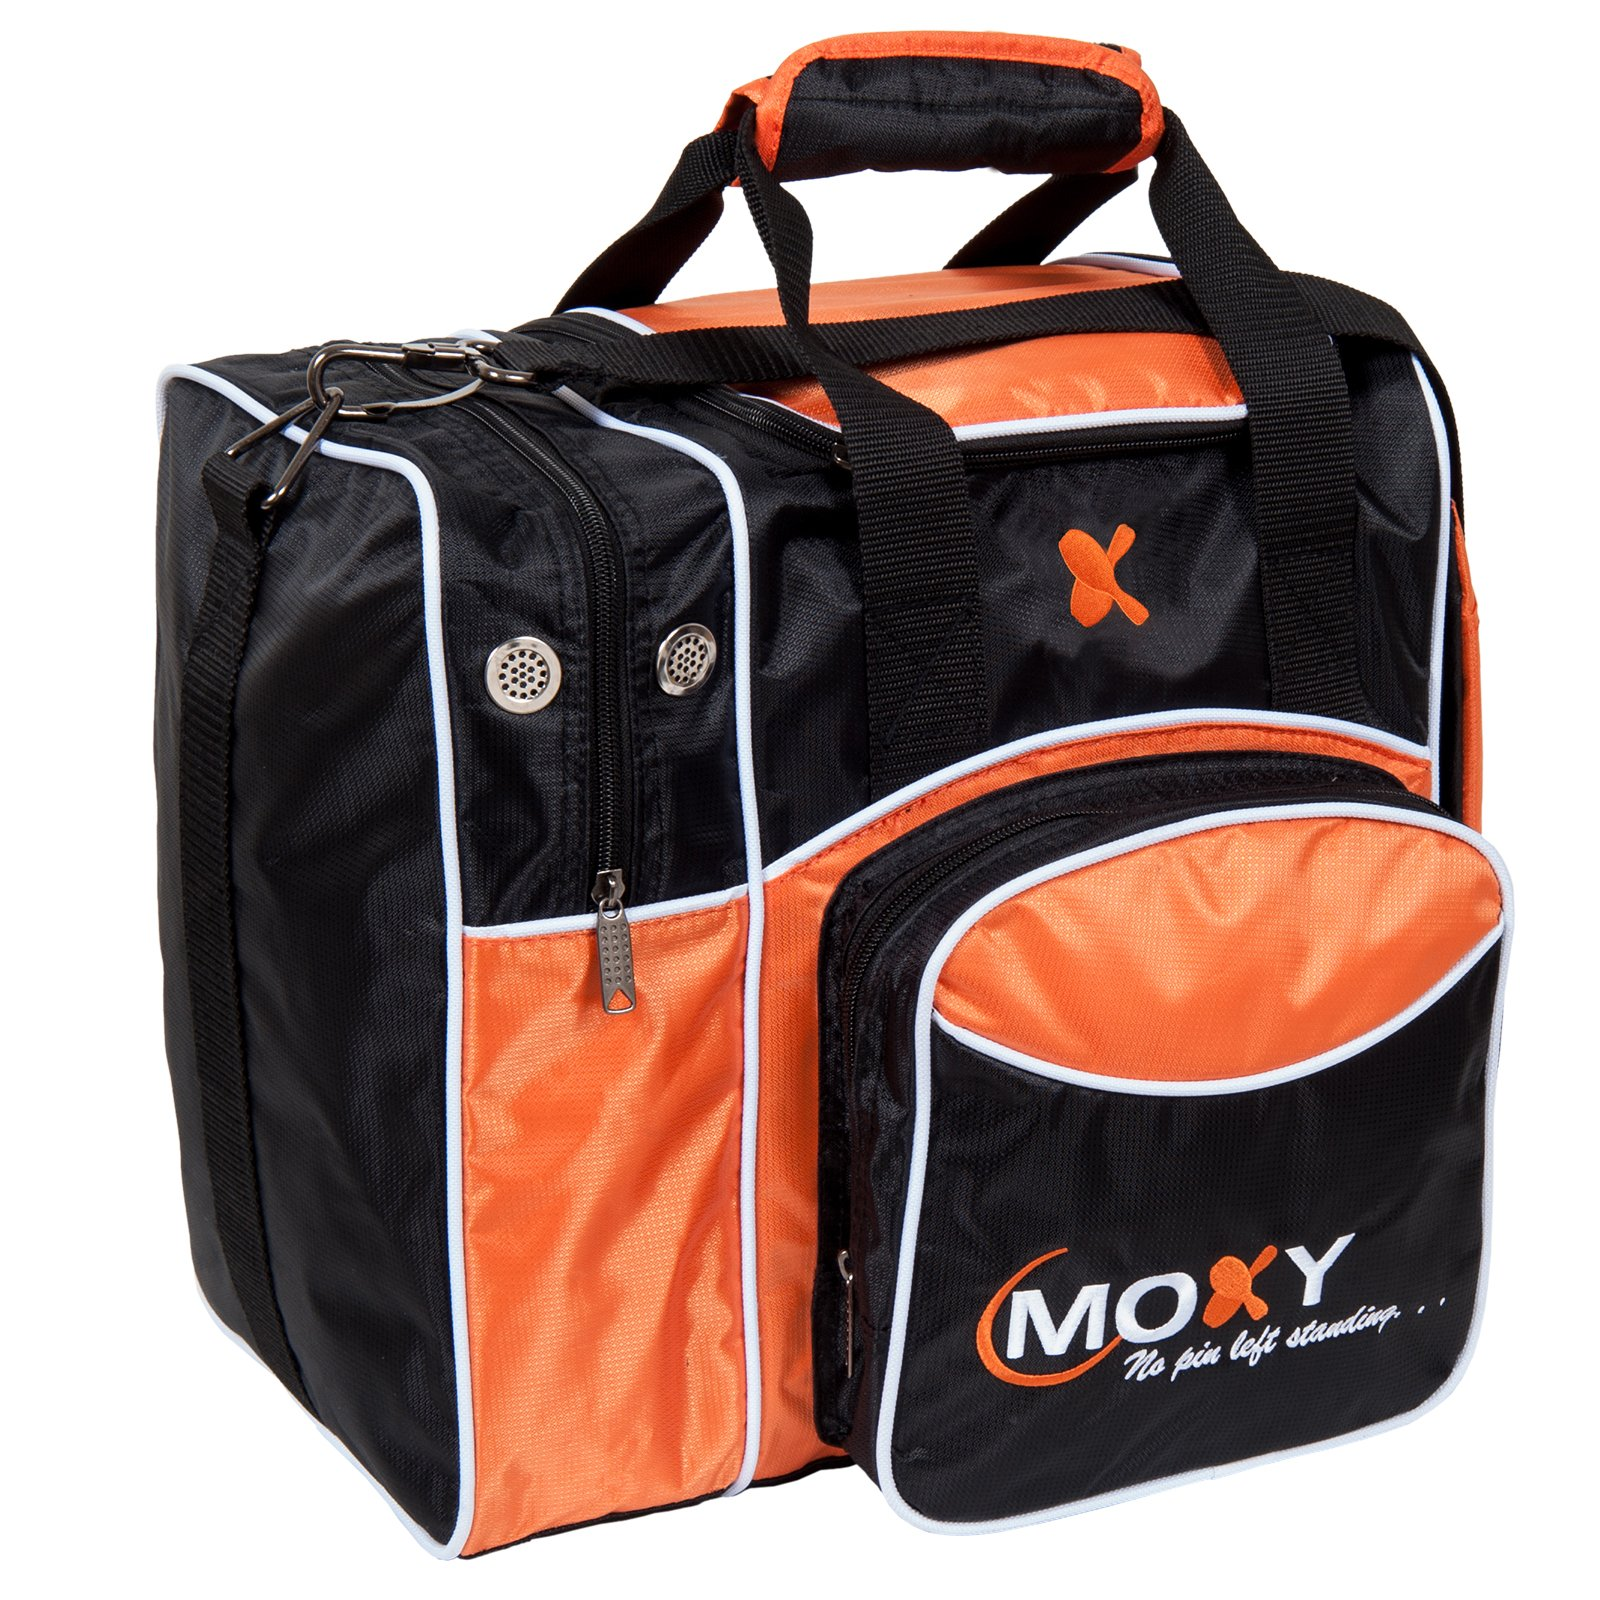 Moxy Deluxe Single Tote Bowling Bag,Orange/Black by Moxy Bowling Products